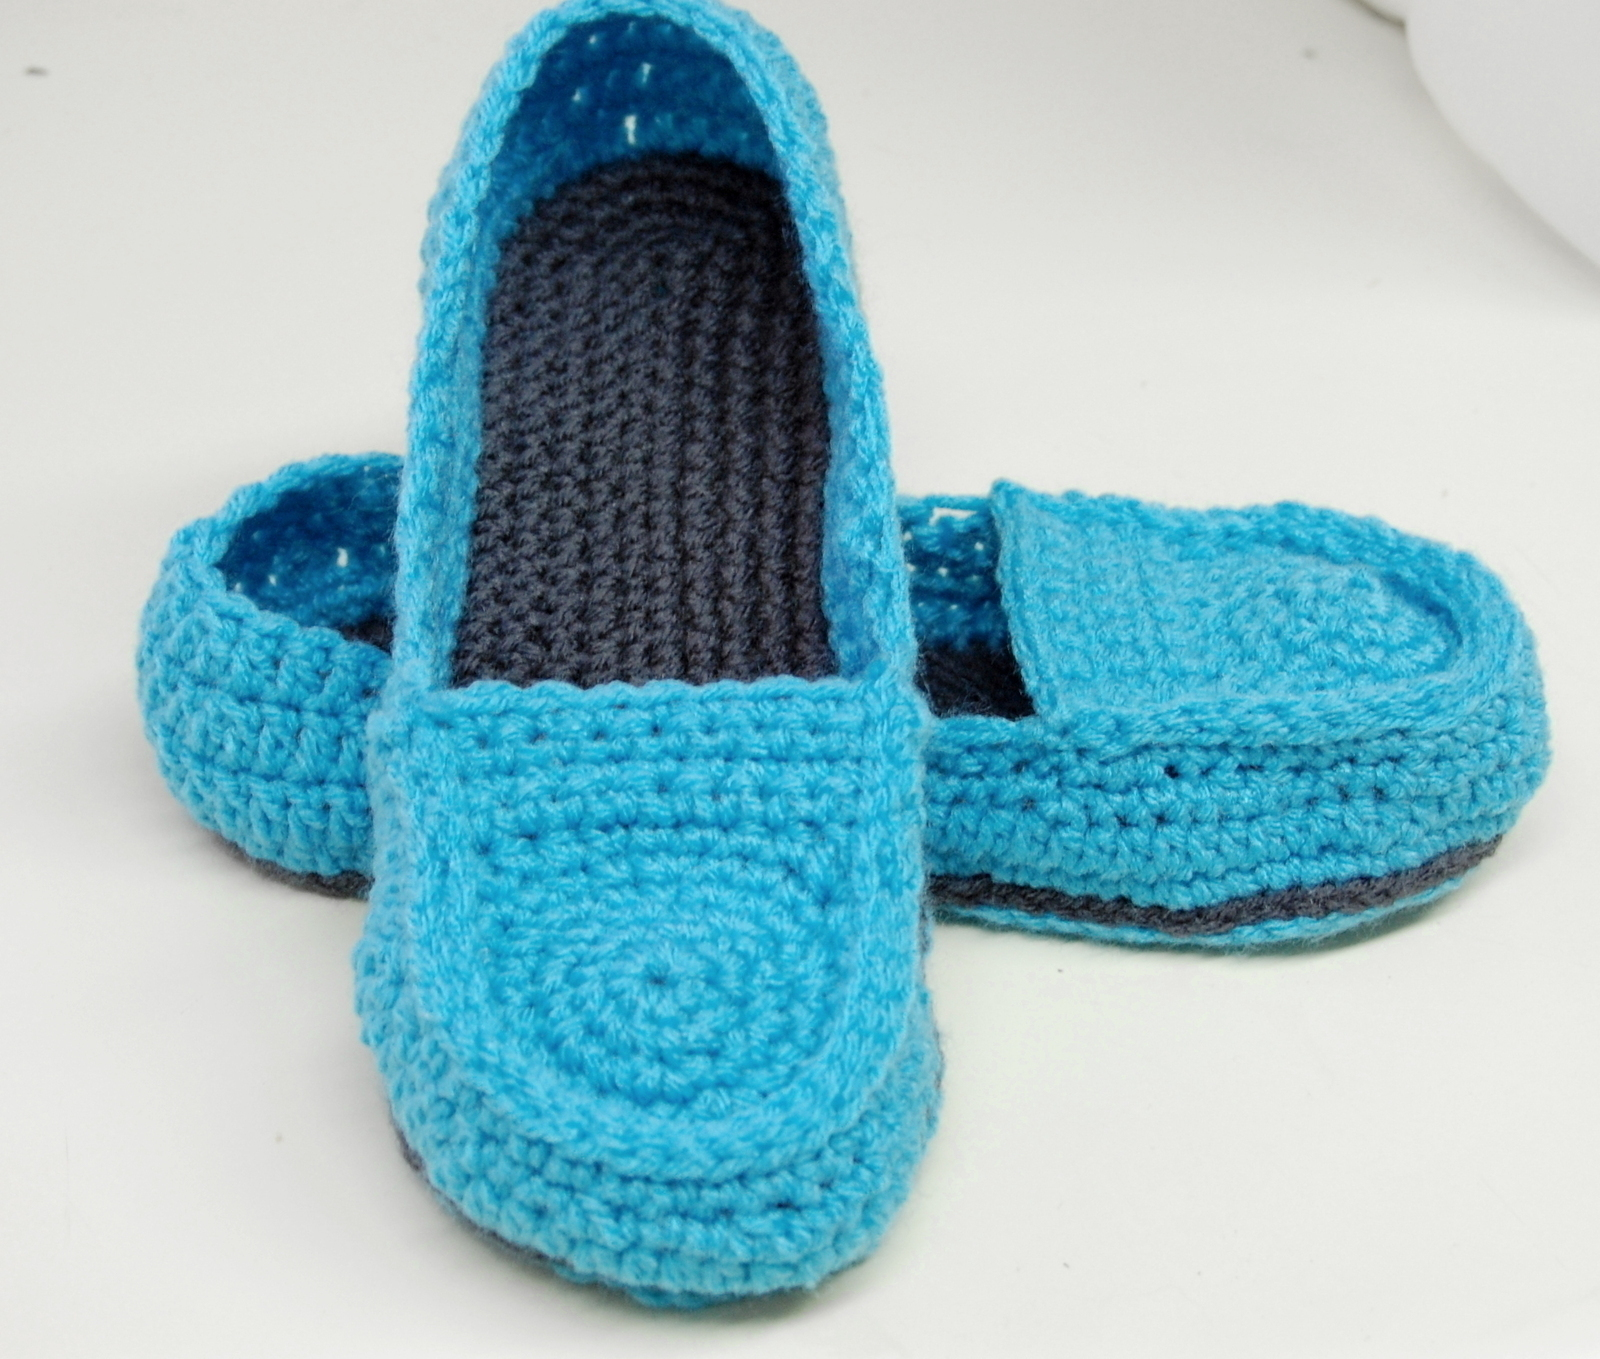 Free Crochet Pattern: Women\'s Loafer Slippers · A Pair Of Knit Or ...